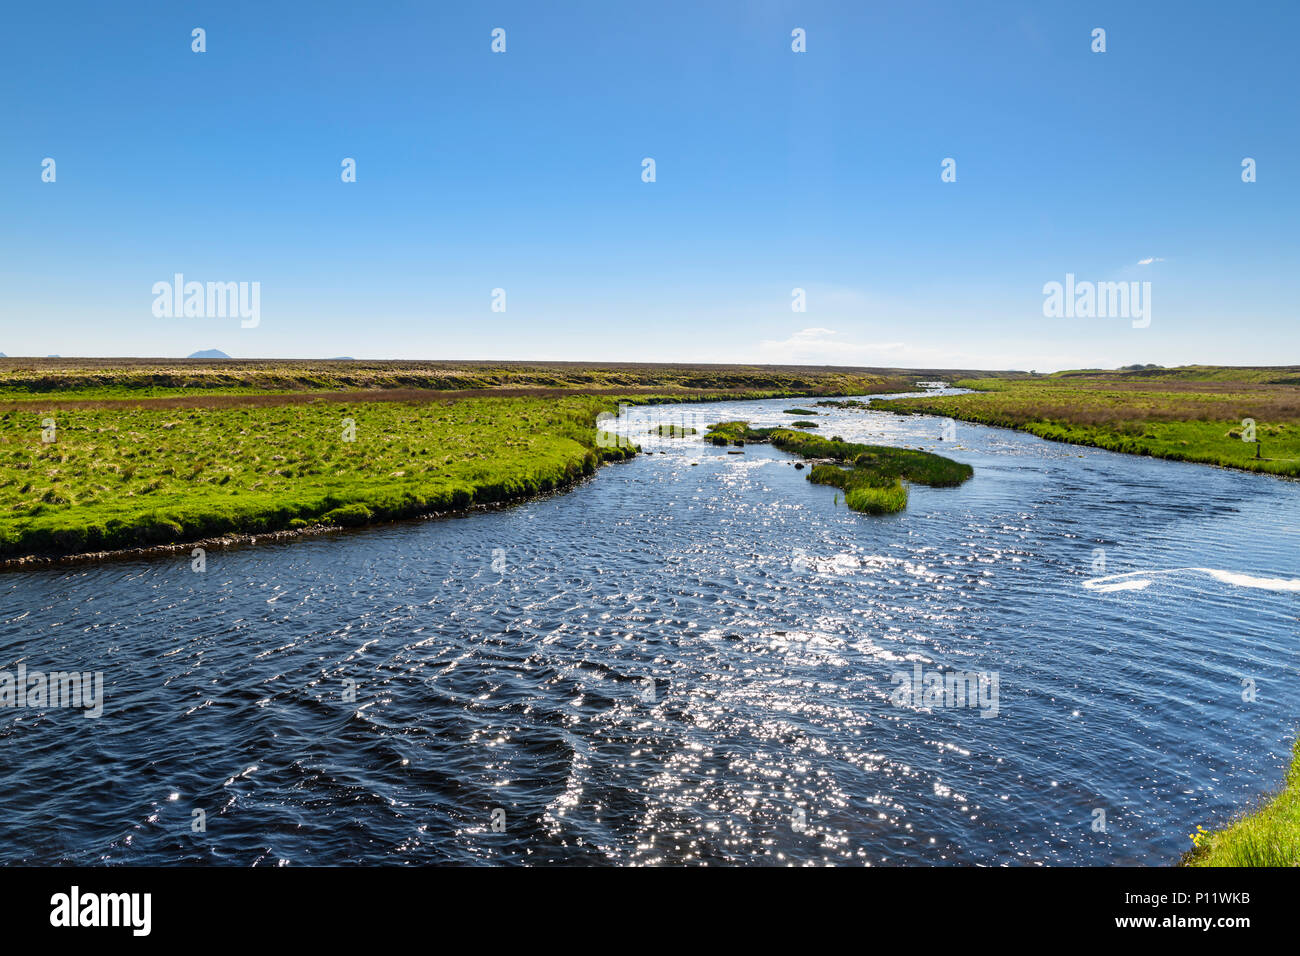 A summers day at the River Thurso near Altnabreac, Halkirk, in Caithness, Scotland. 24 May 2018 Stock Photo